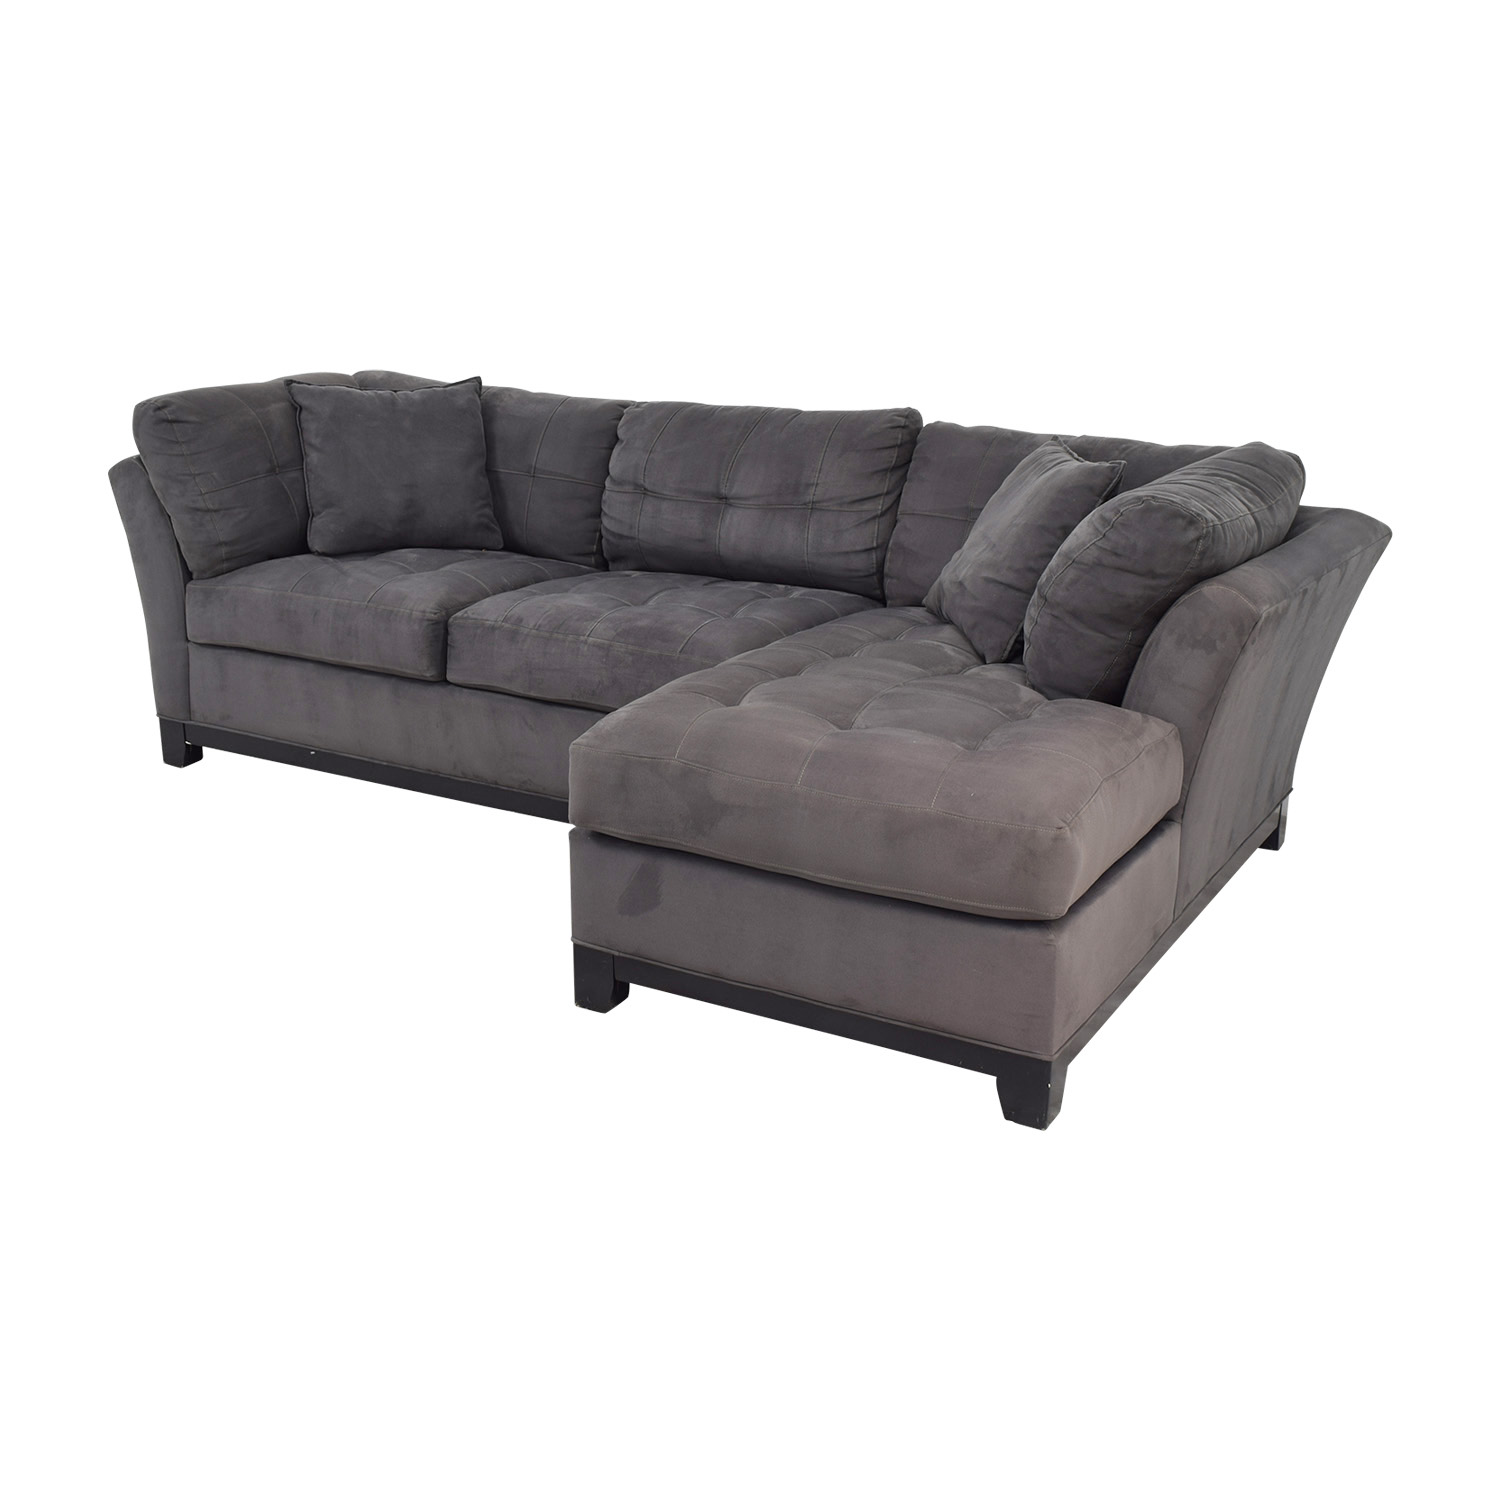 Raymour & Flanigan Raymour & Flanigan Charcoal Tufted Chaise Sectional price